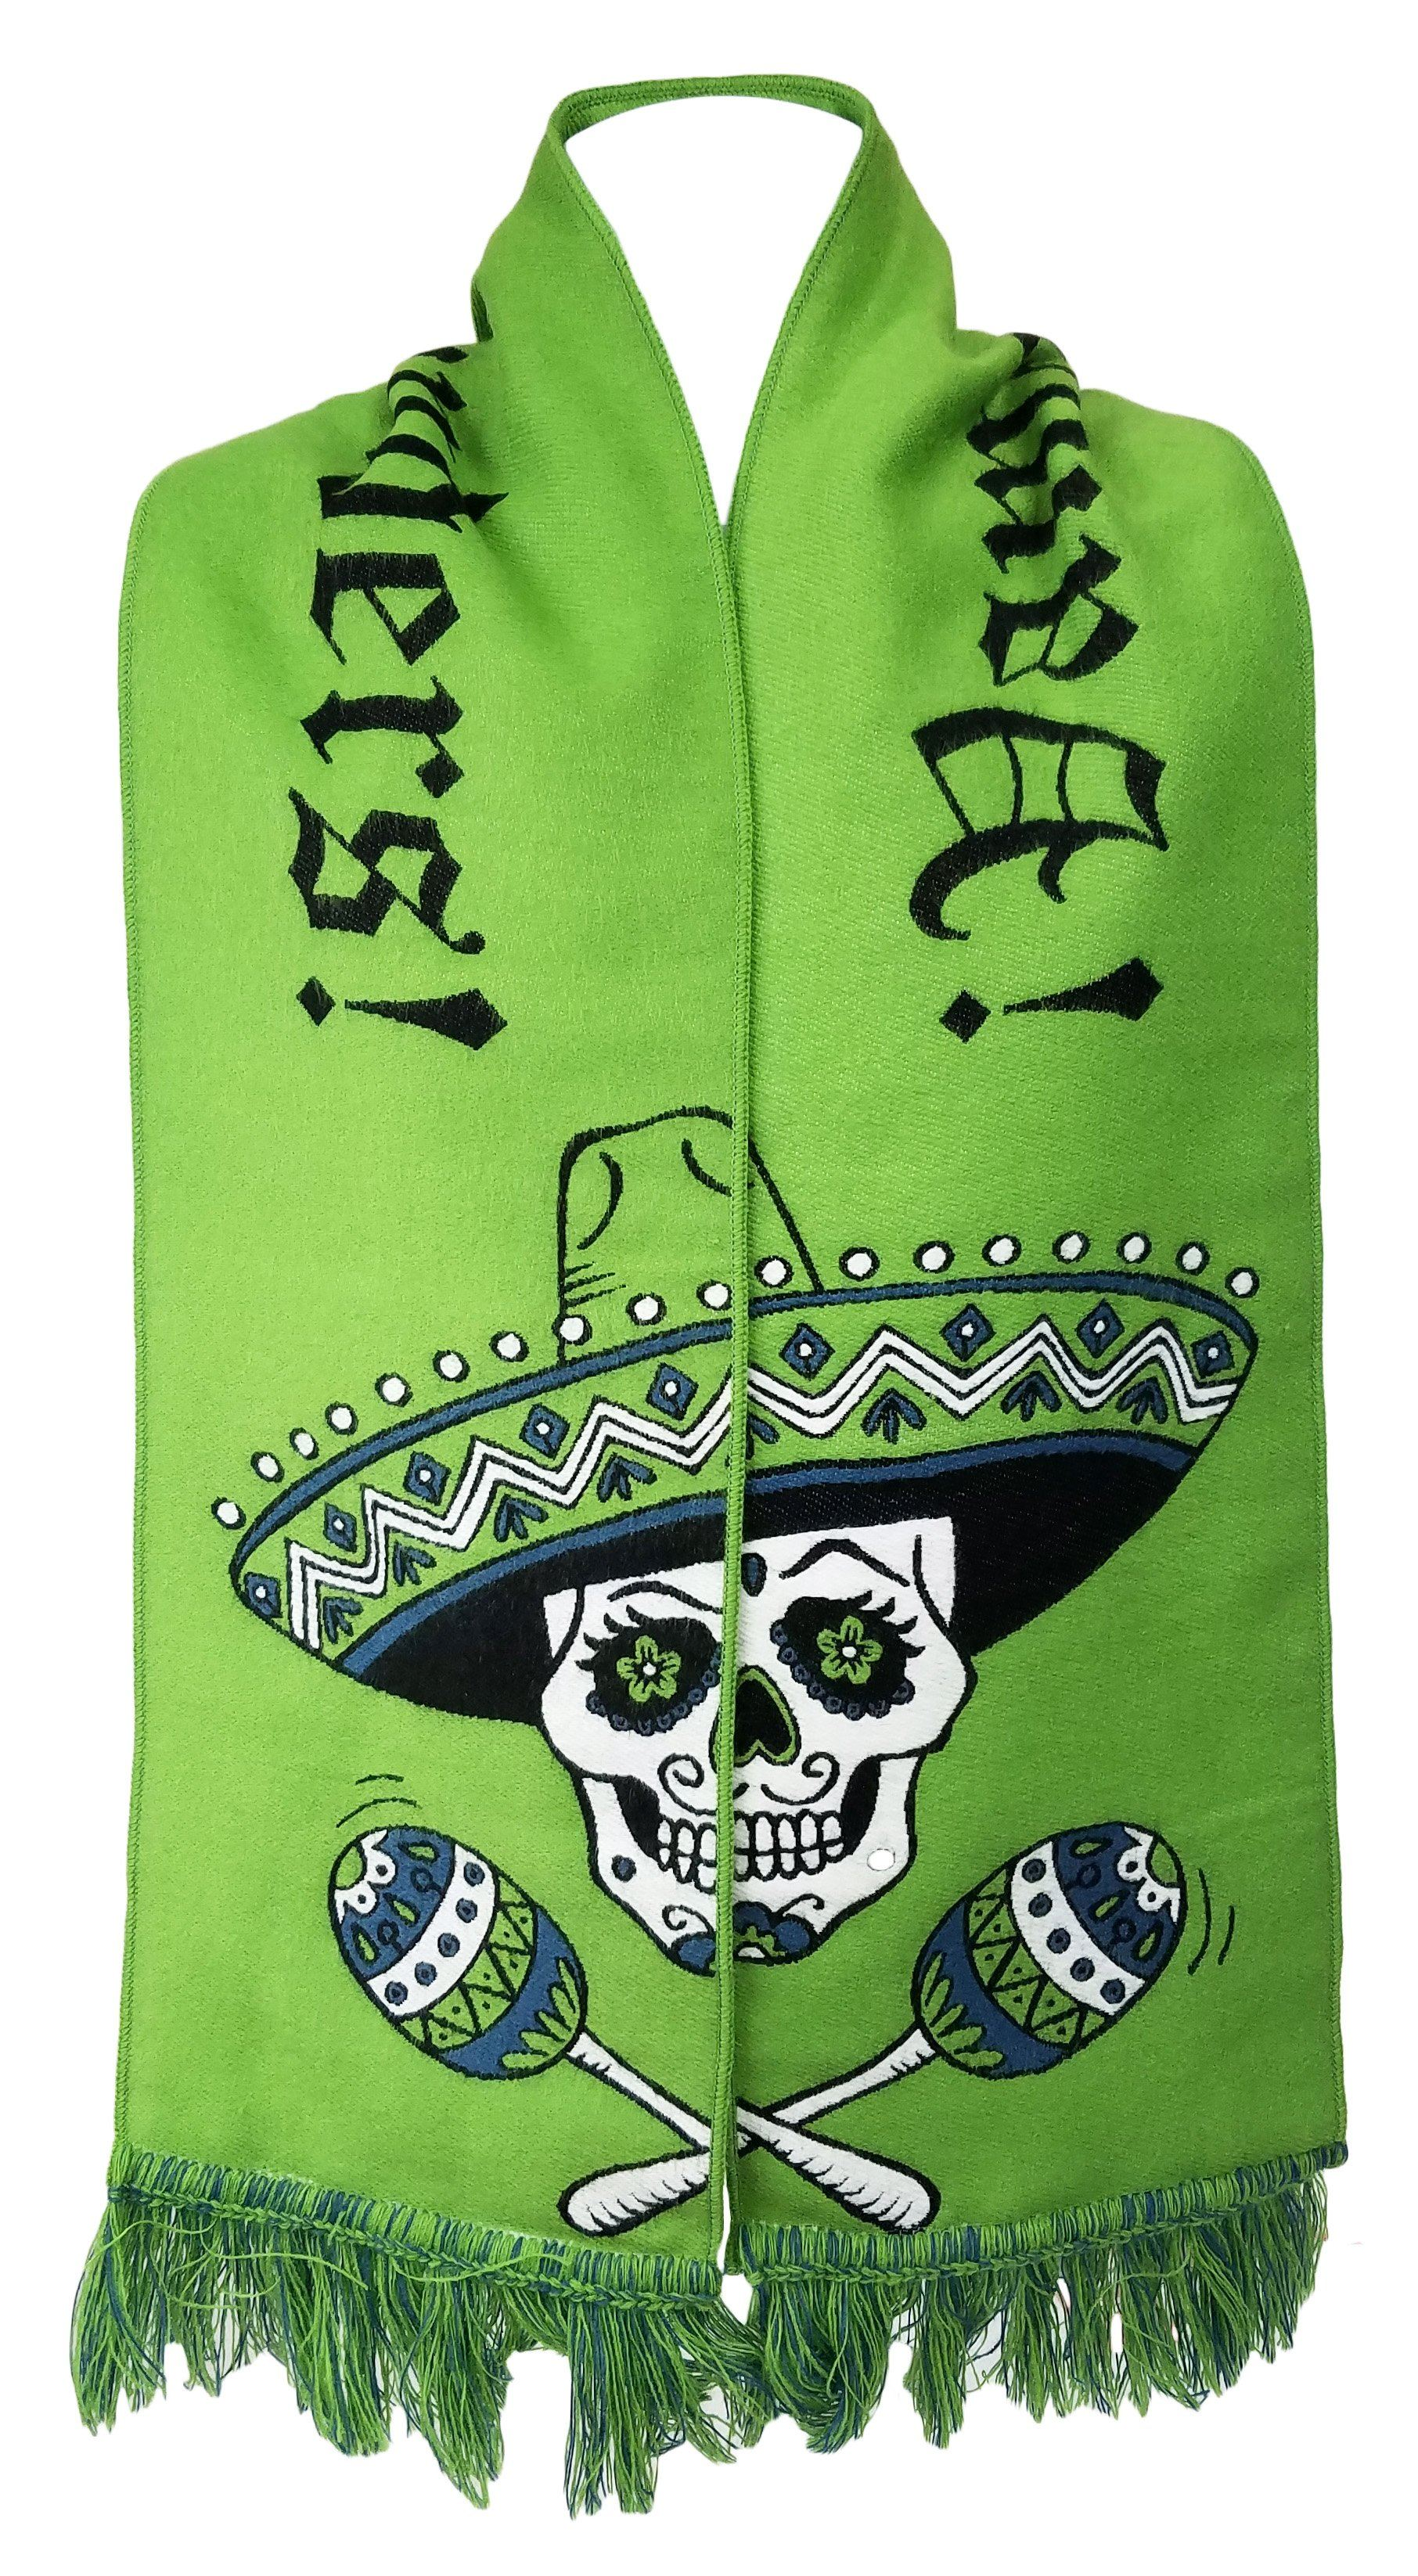 SEATTLE SOUNDERS SCARF - Vamos Sounders (HD Woven)